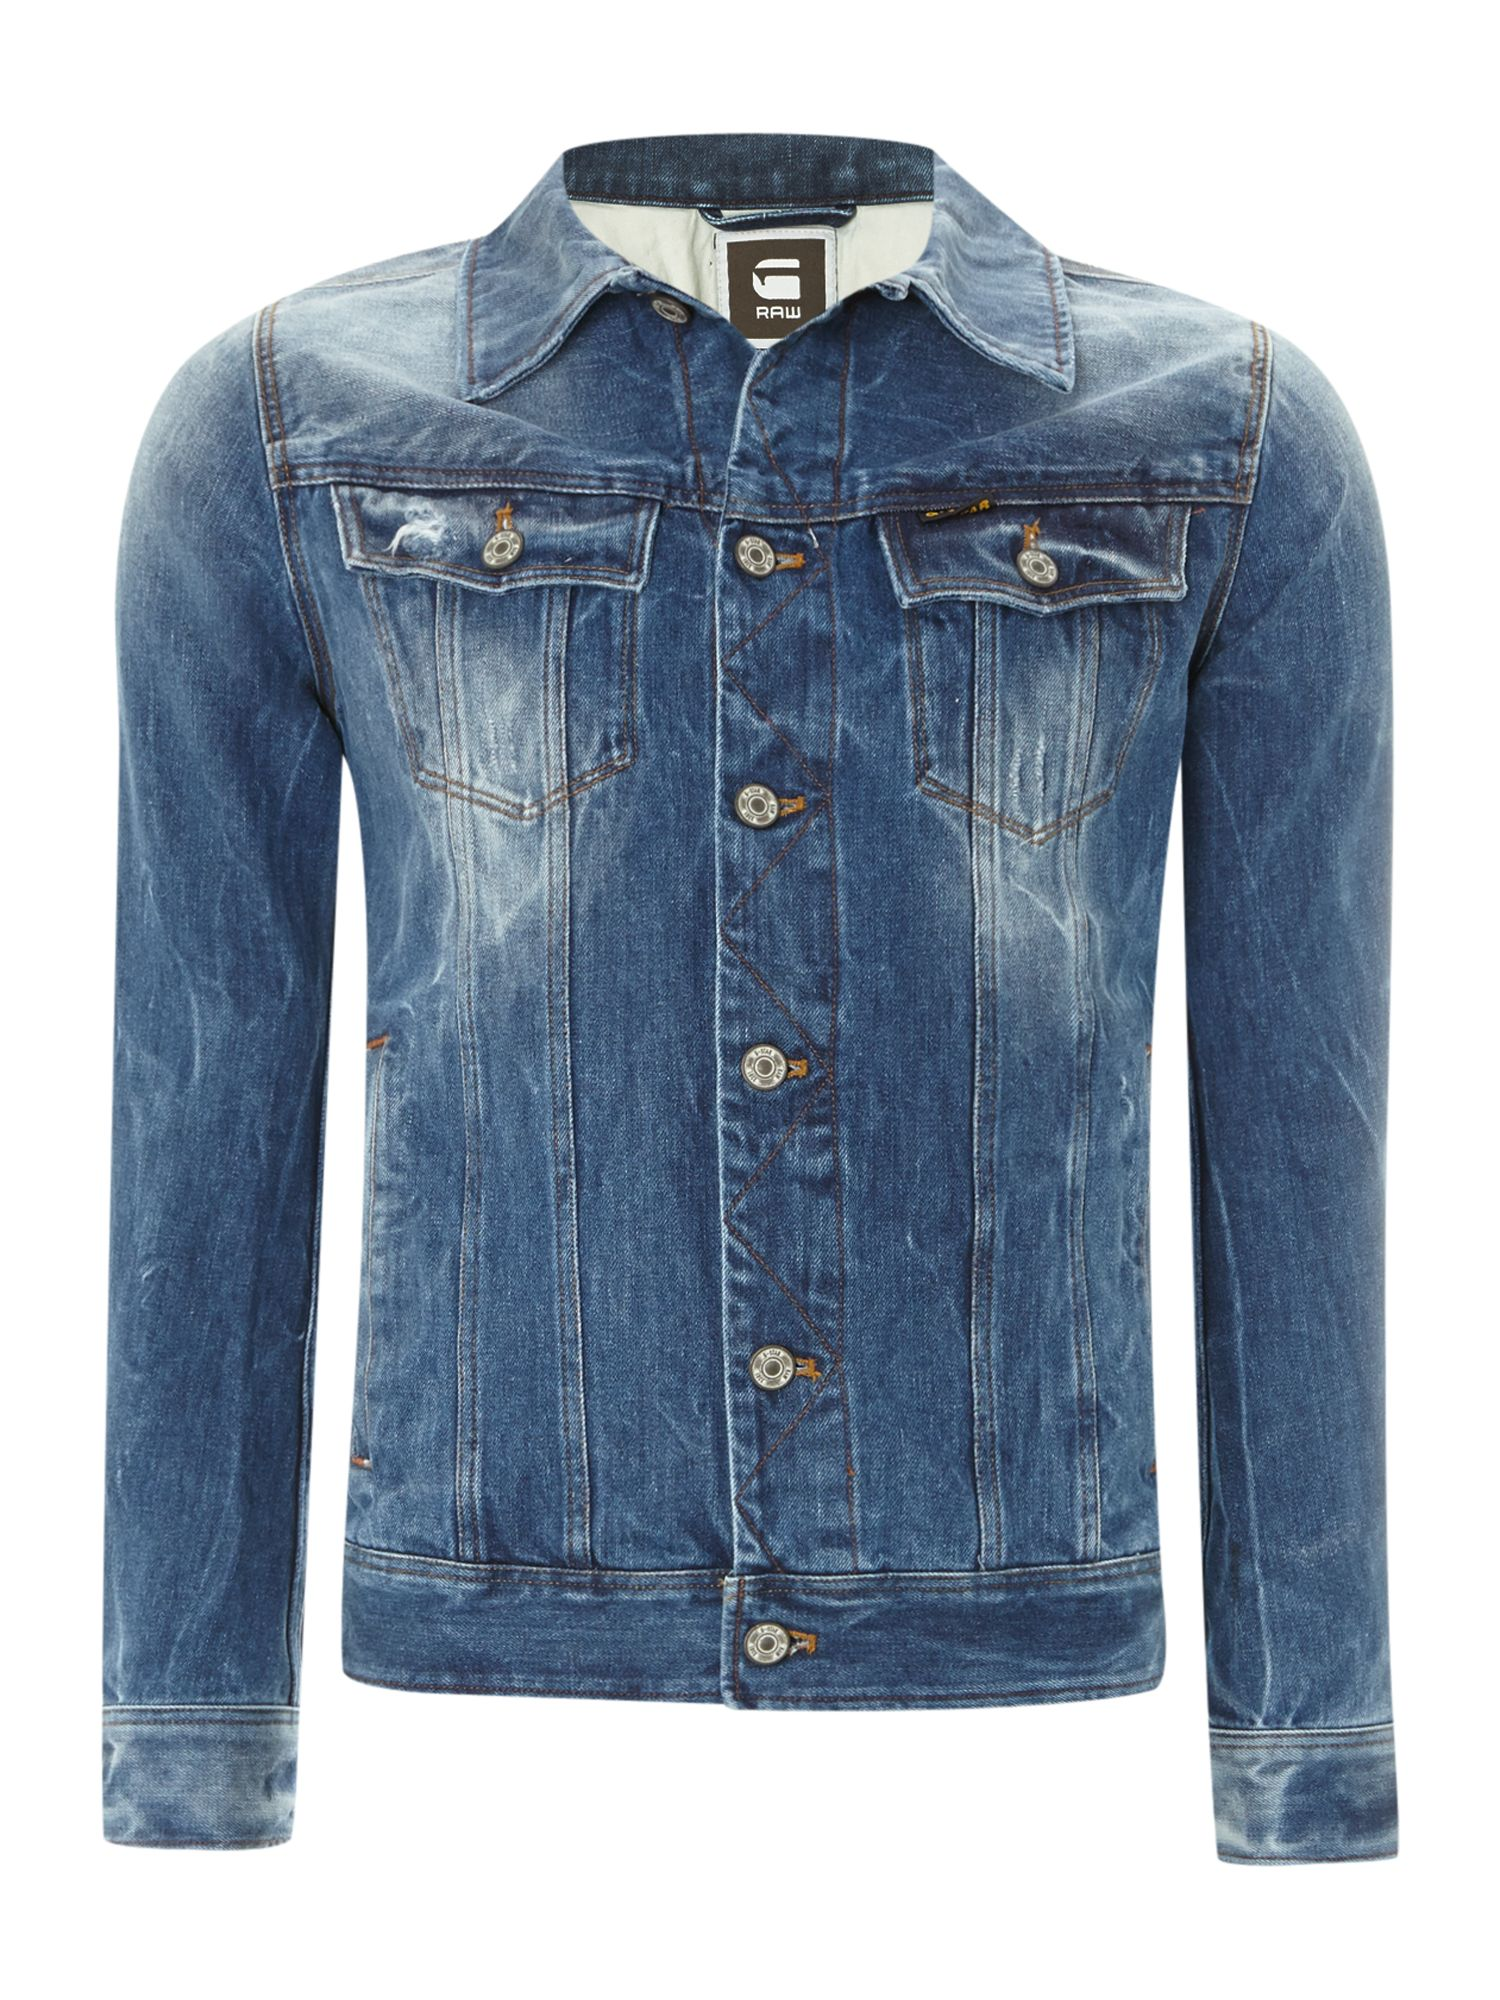 Slim tailored denim jacket